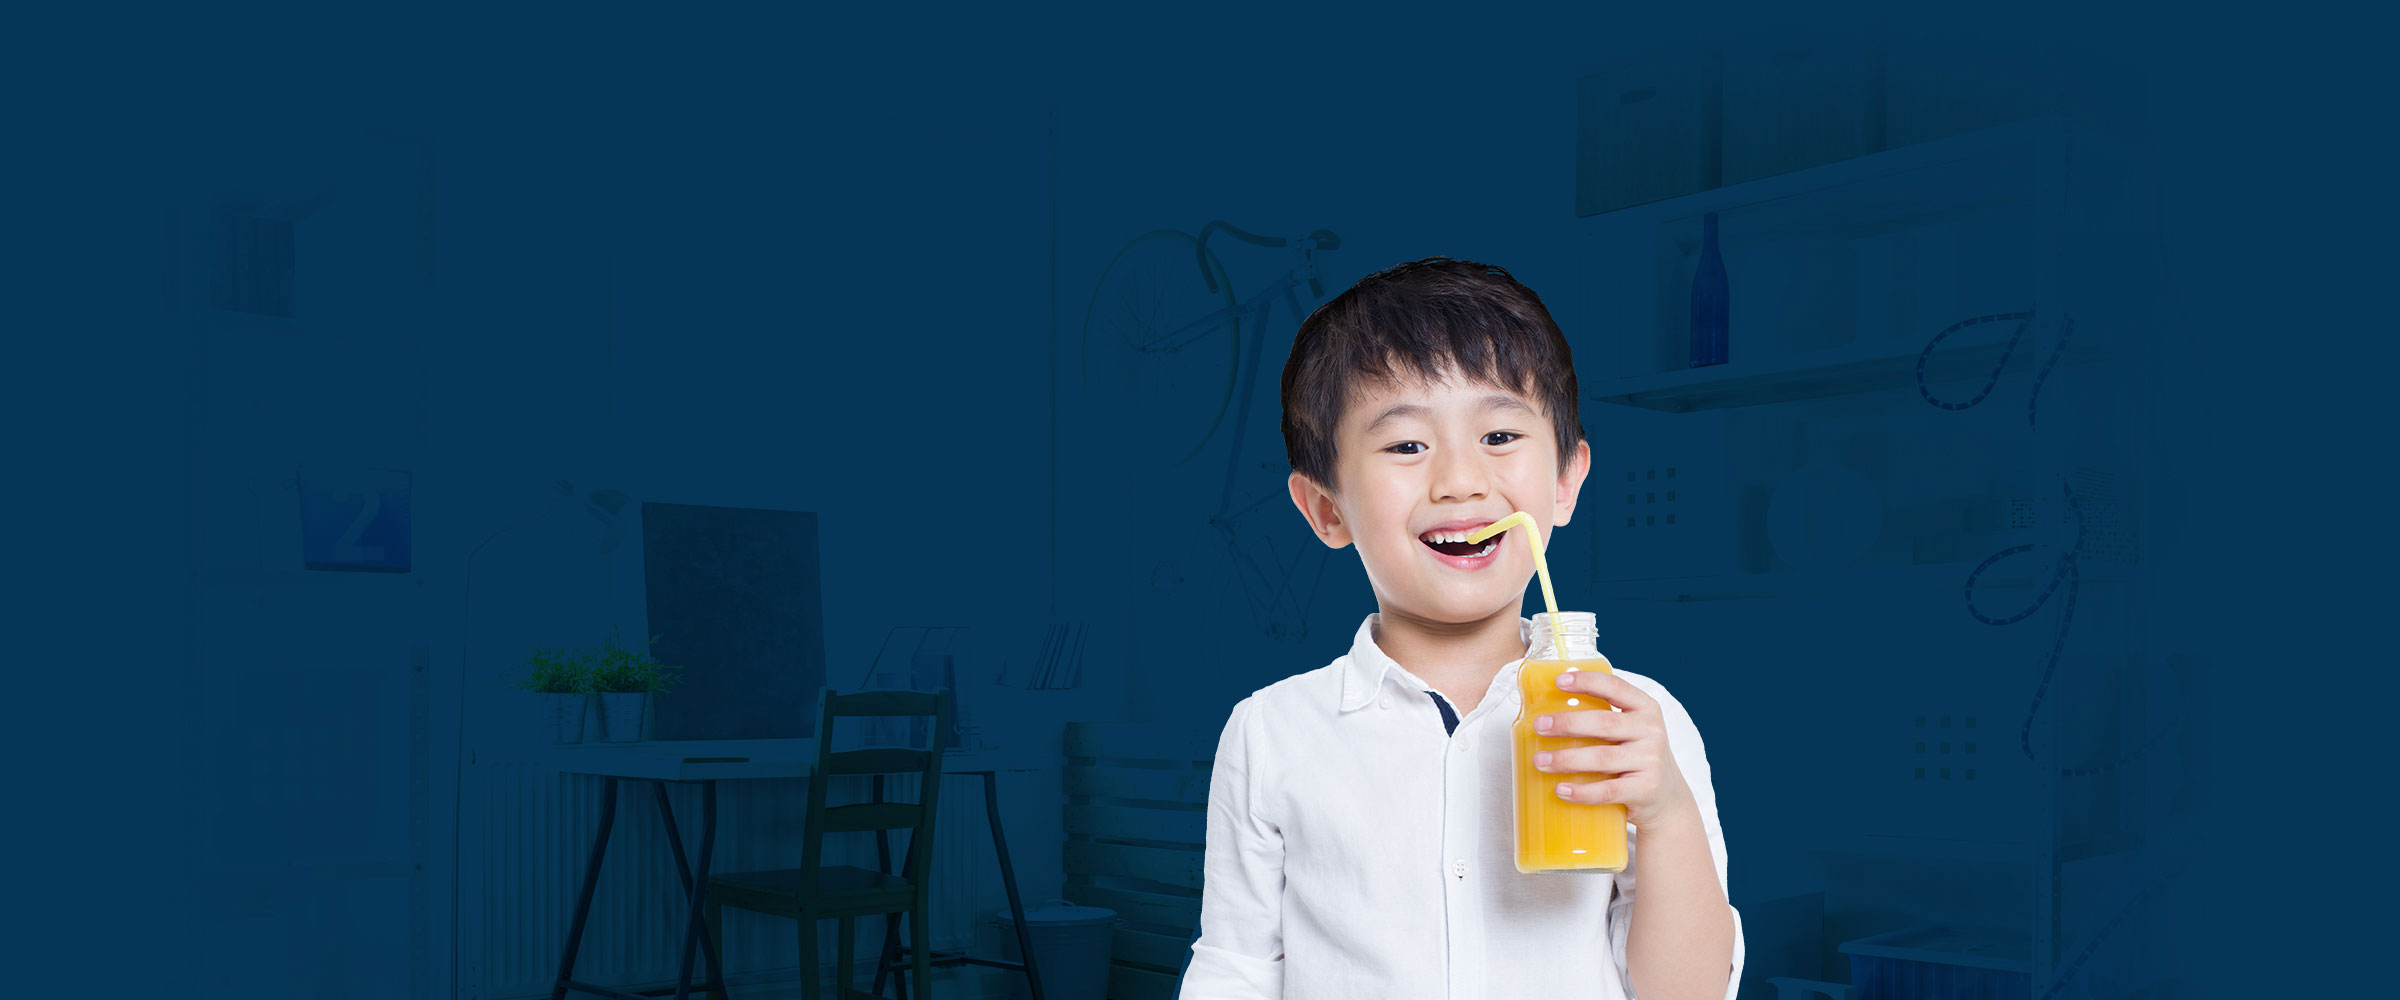 Boy-with-juice-drink